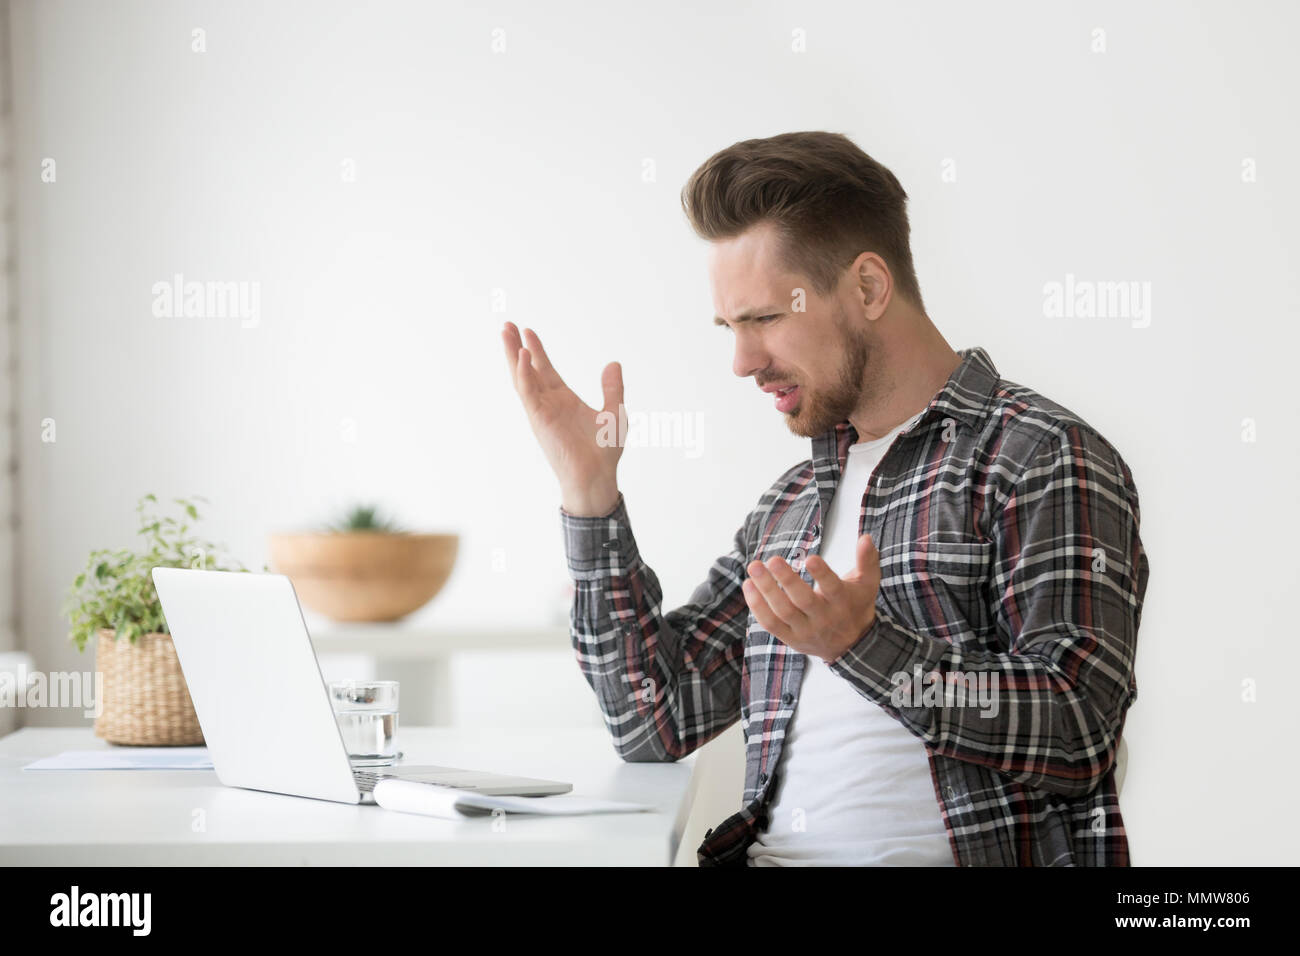 Confused angry man frustrated by online problem, hate stuck lapt - Stock Image